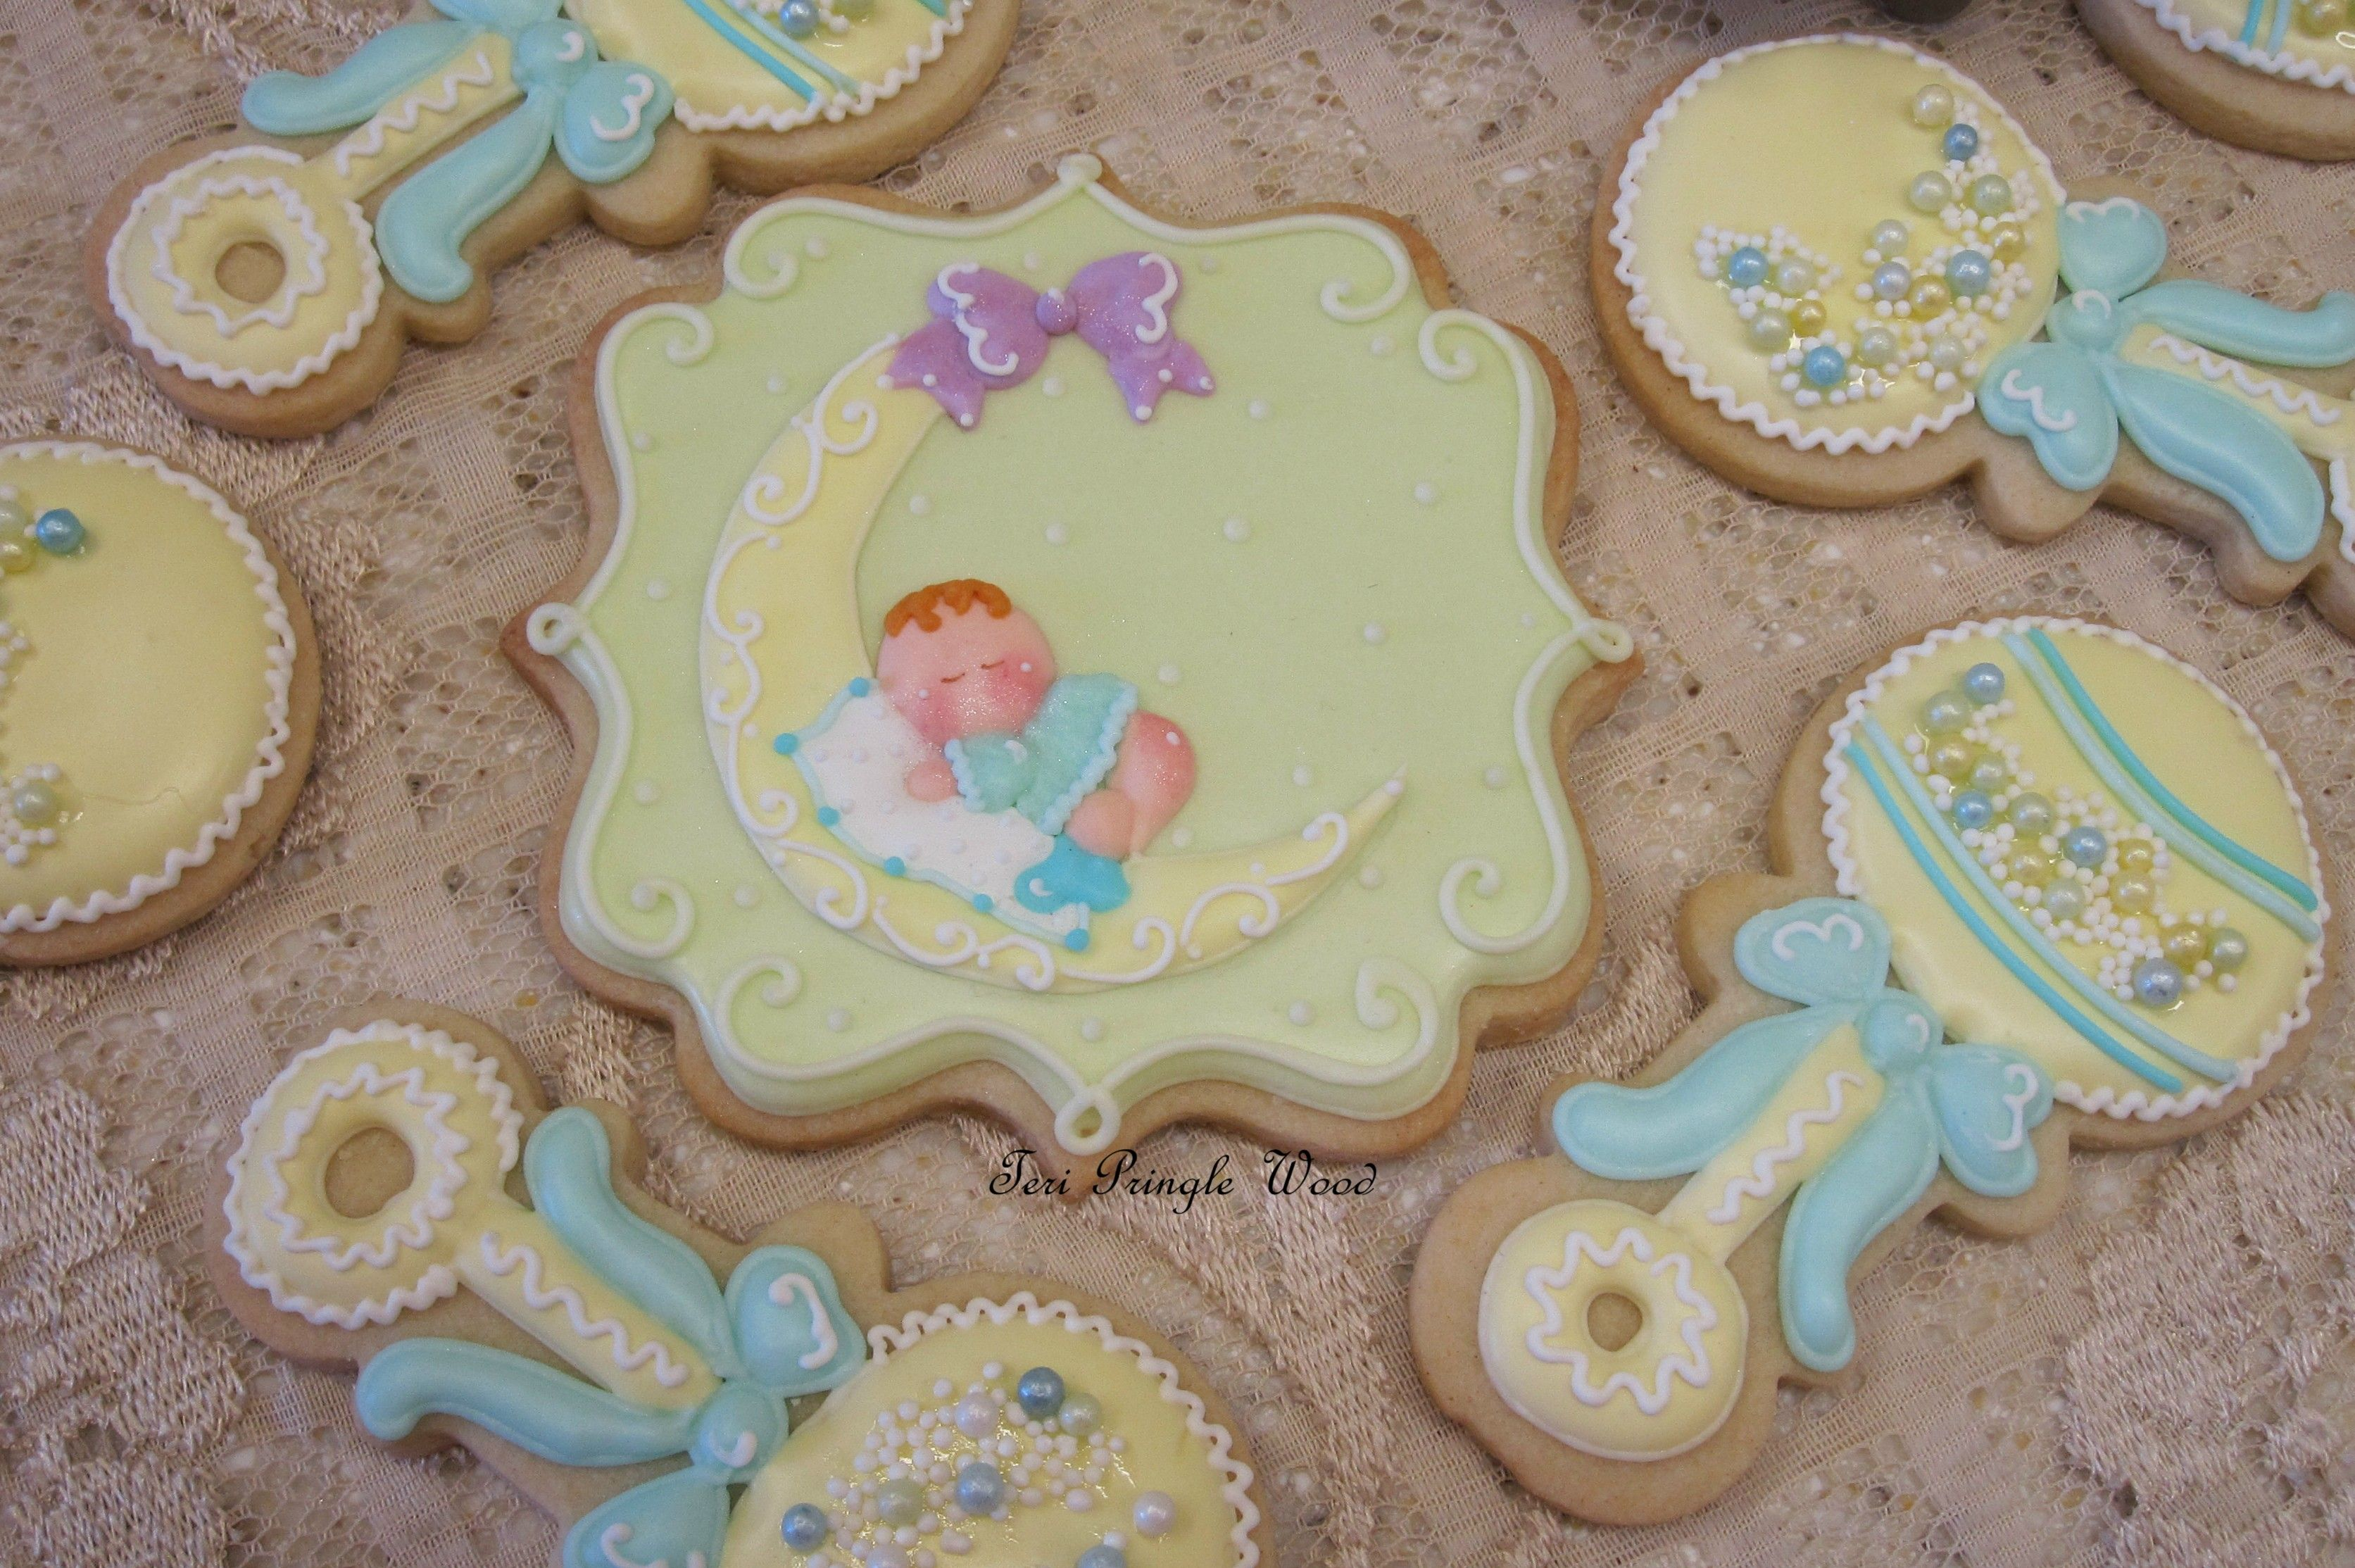 Baby shower decorated cookie